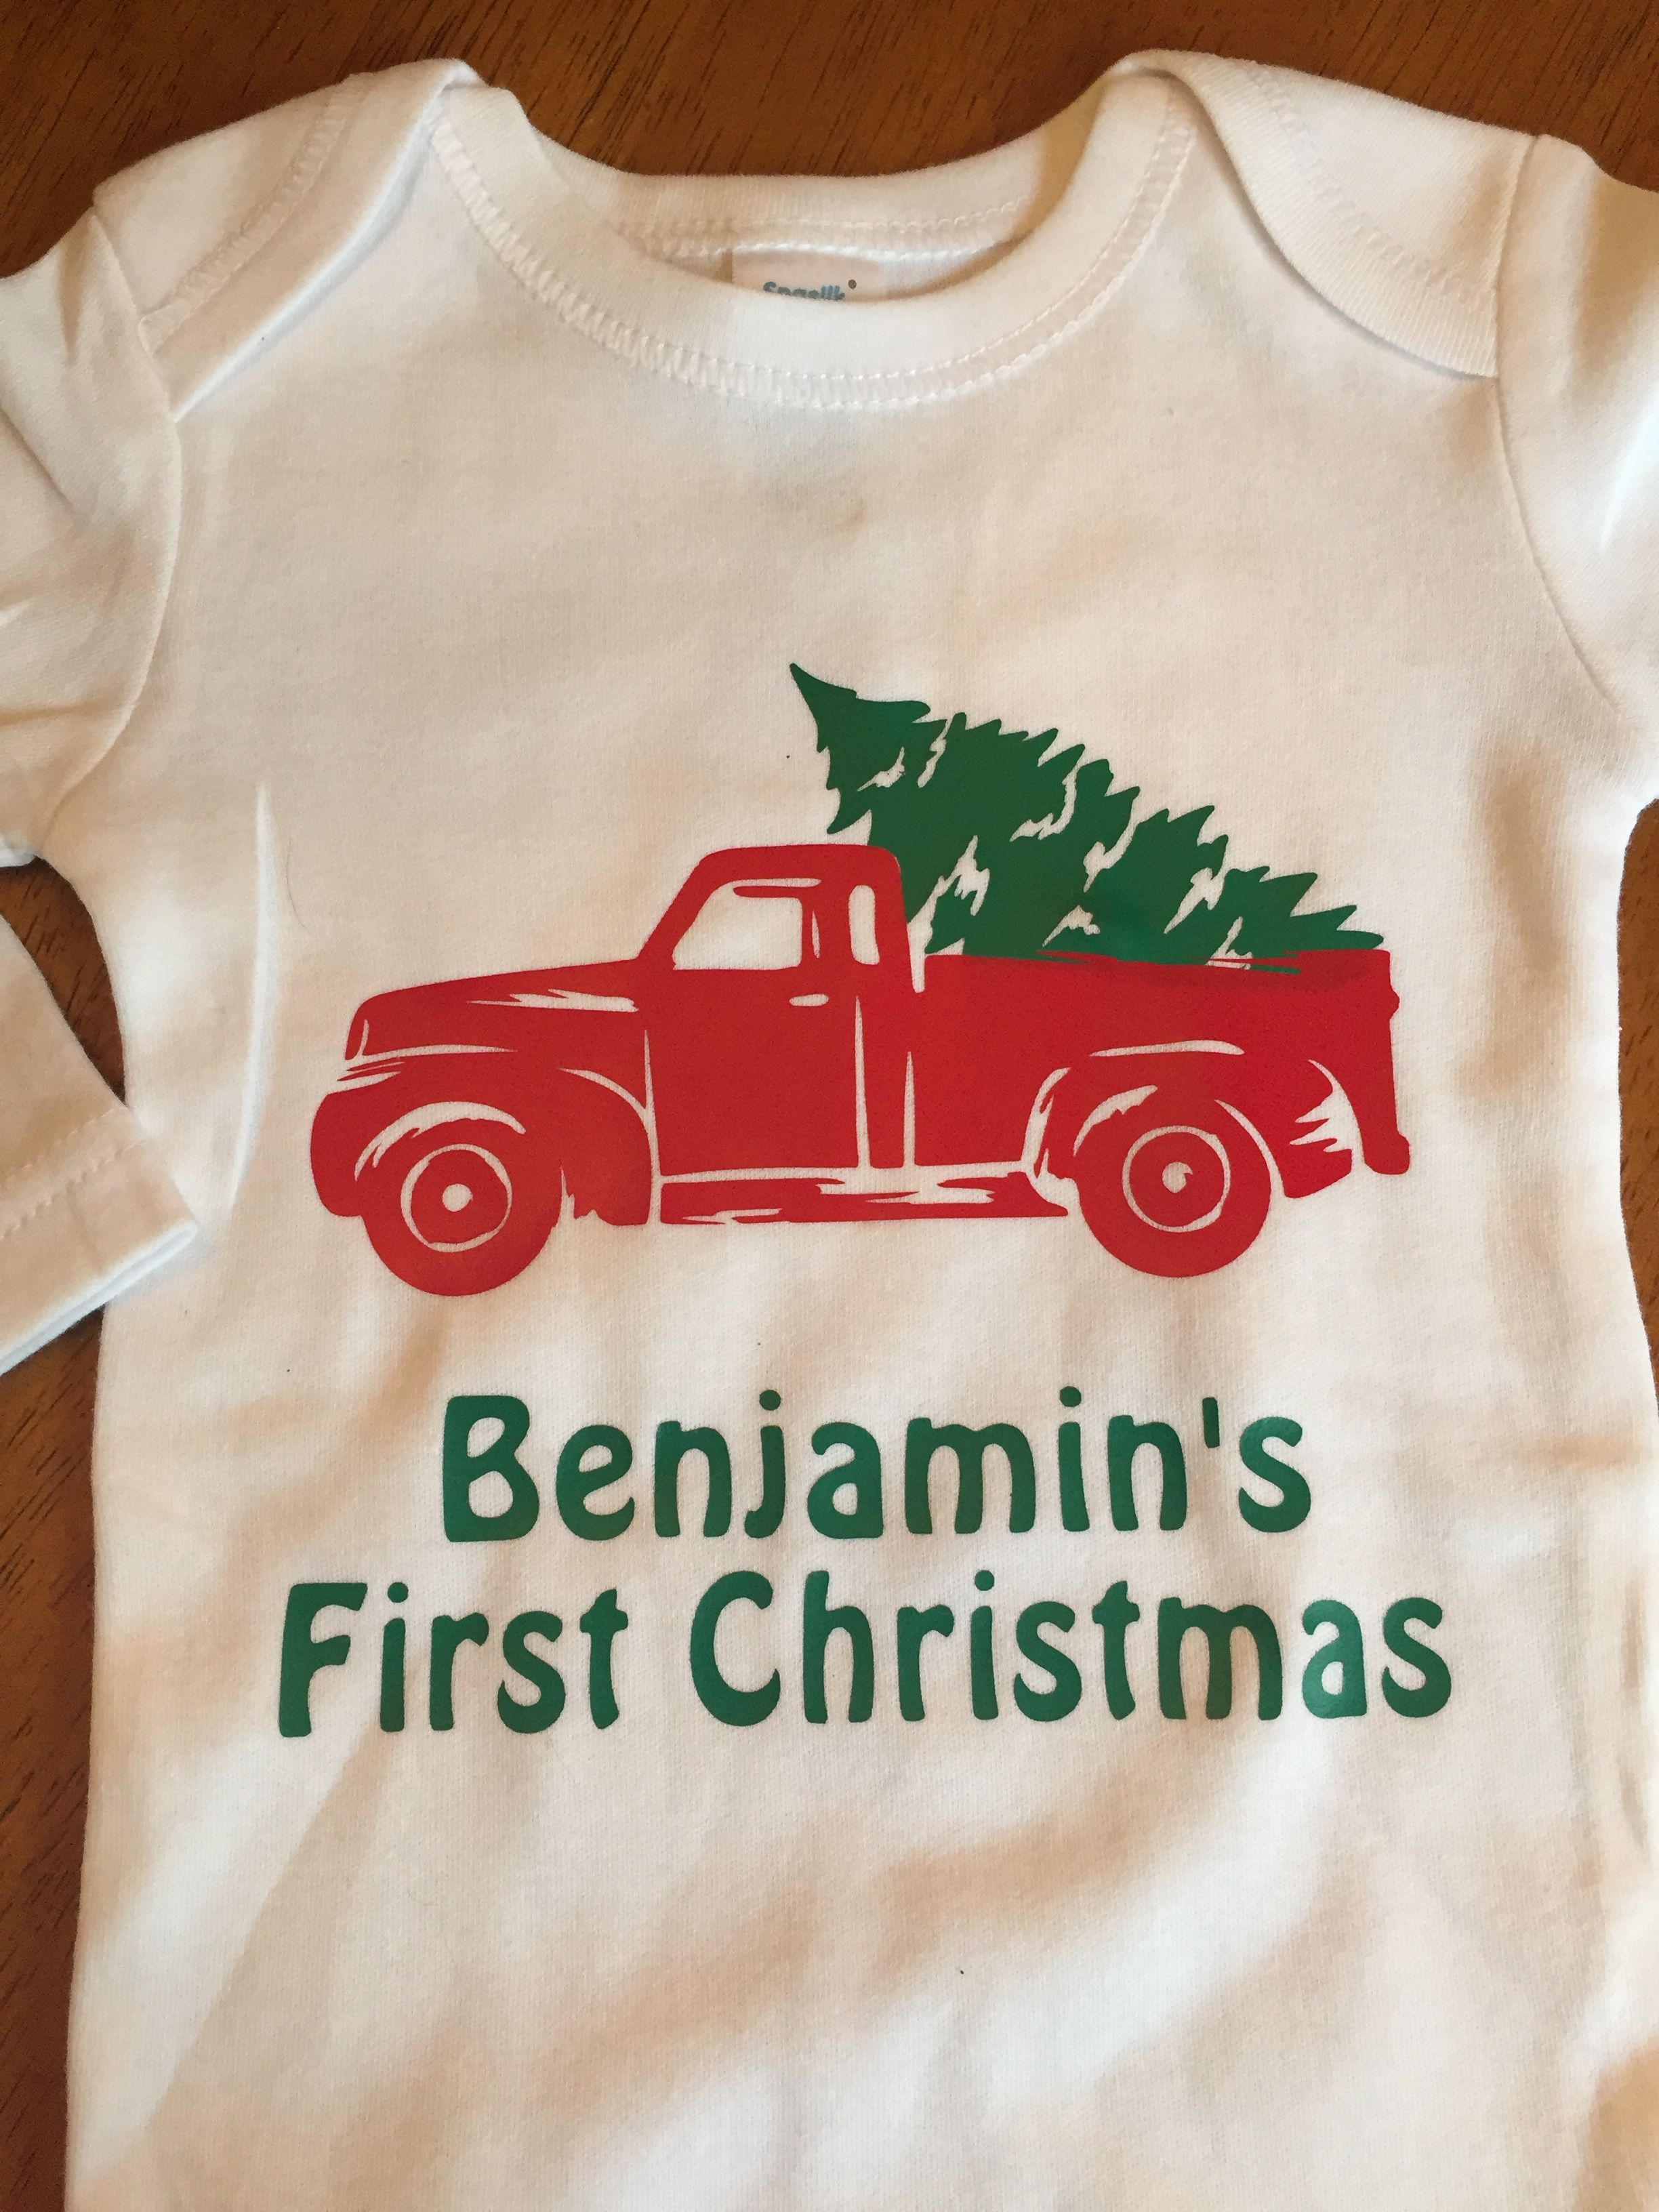 0997bd3fe Baby's First Christmas personalized onesie with green and red heat transfer  vinyl (htv). Siser Easyweed. Red truck.